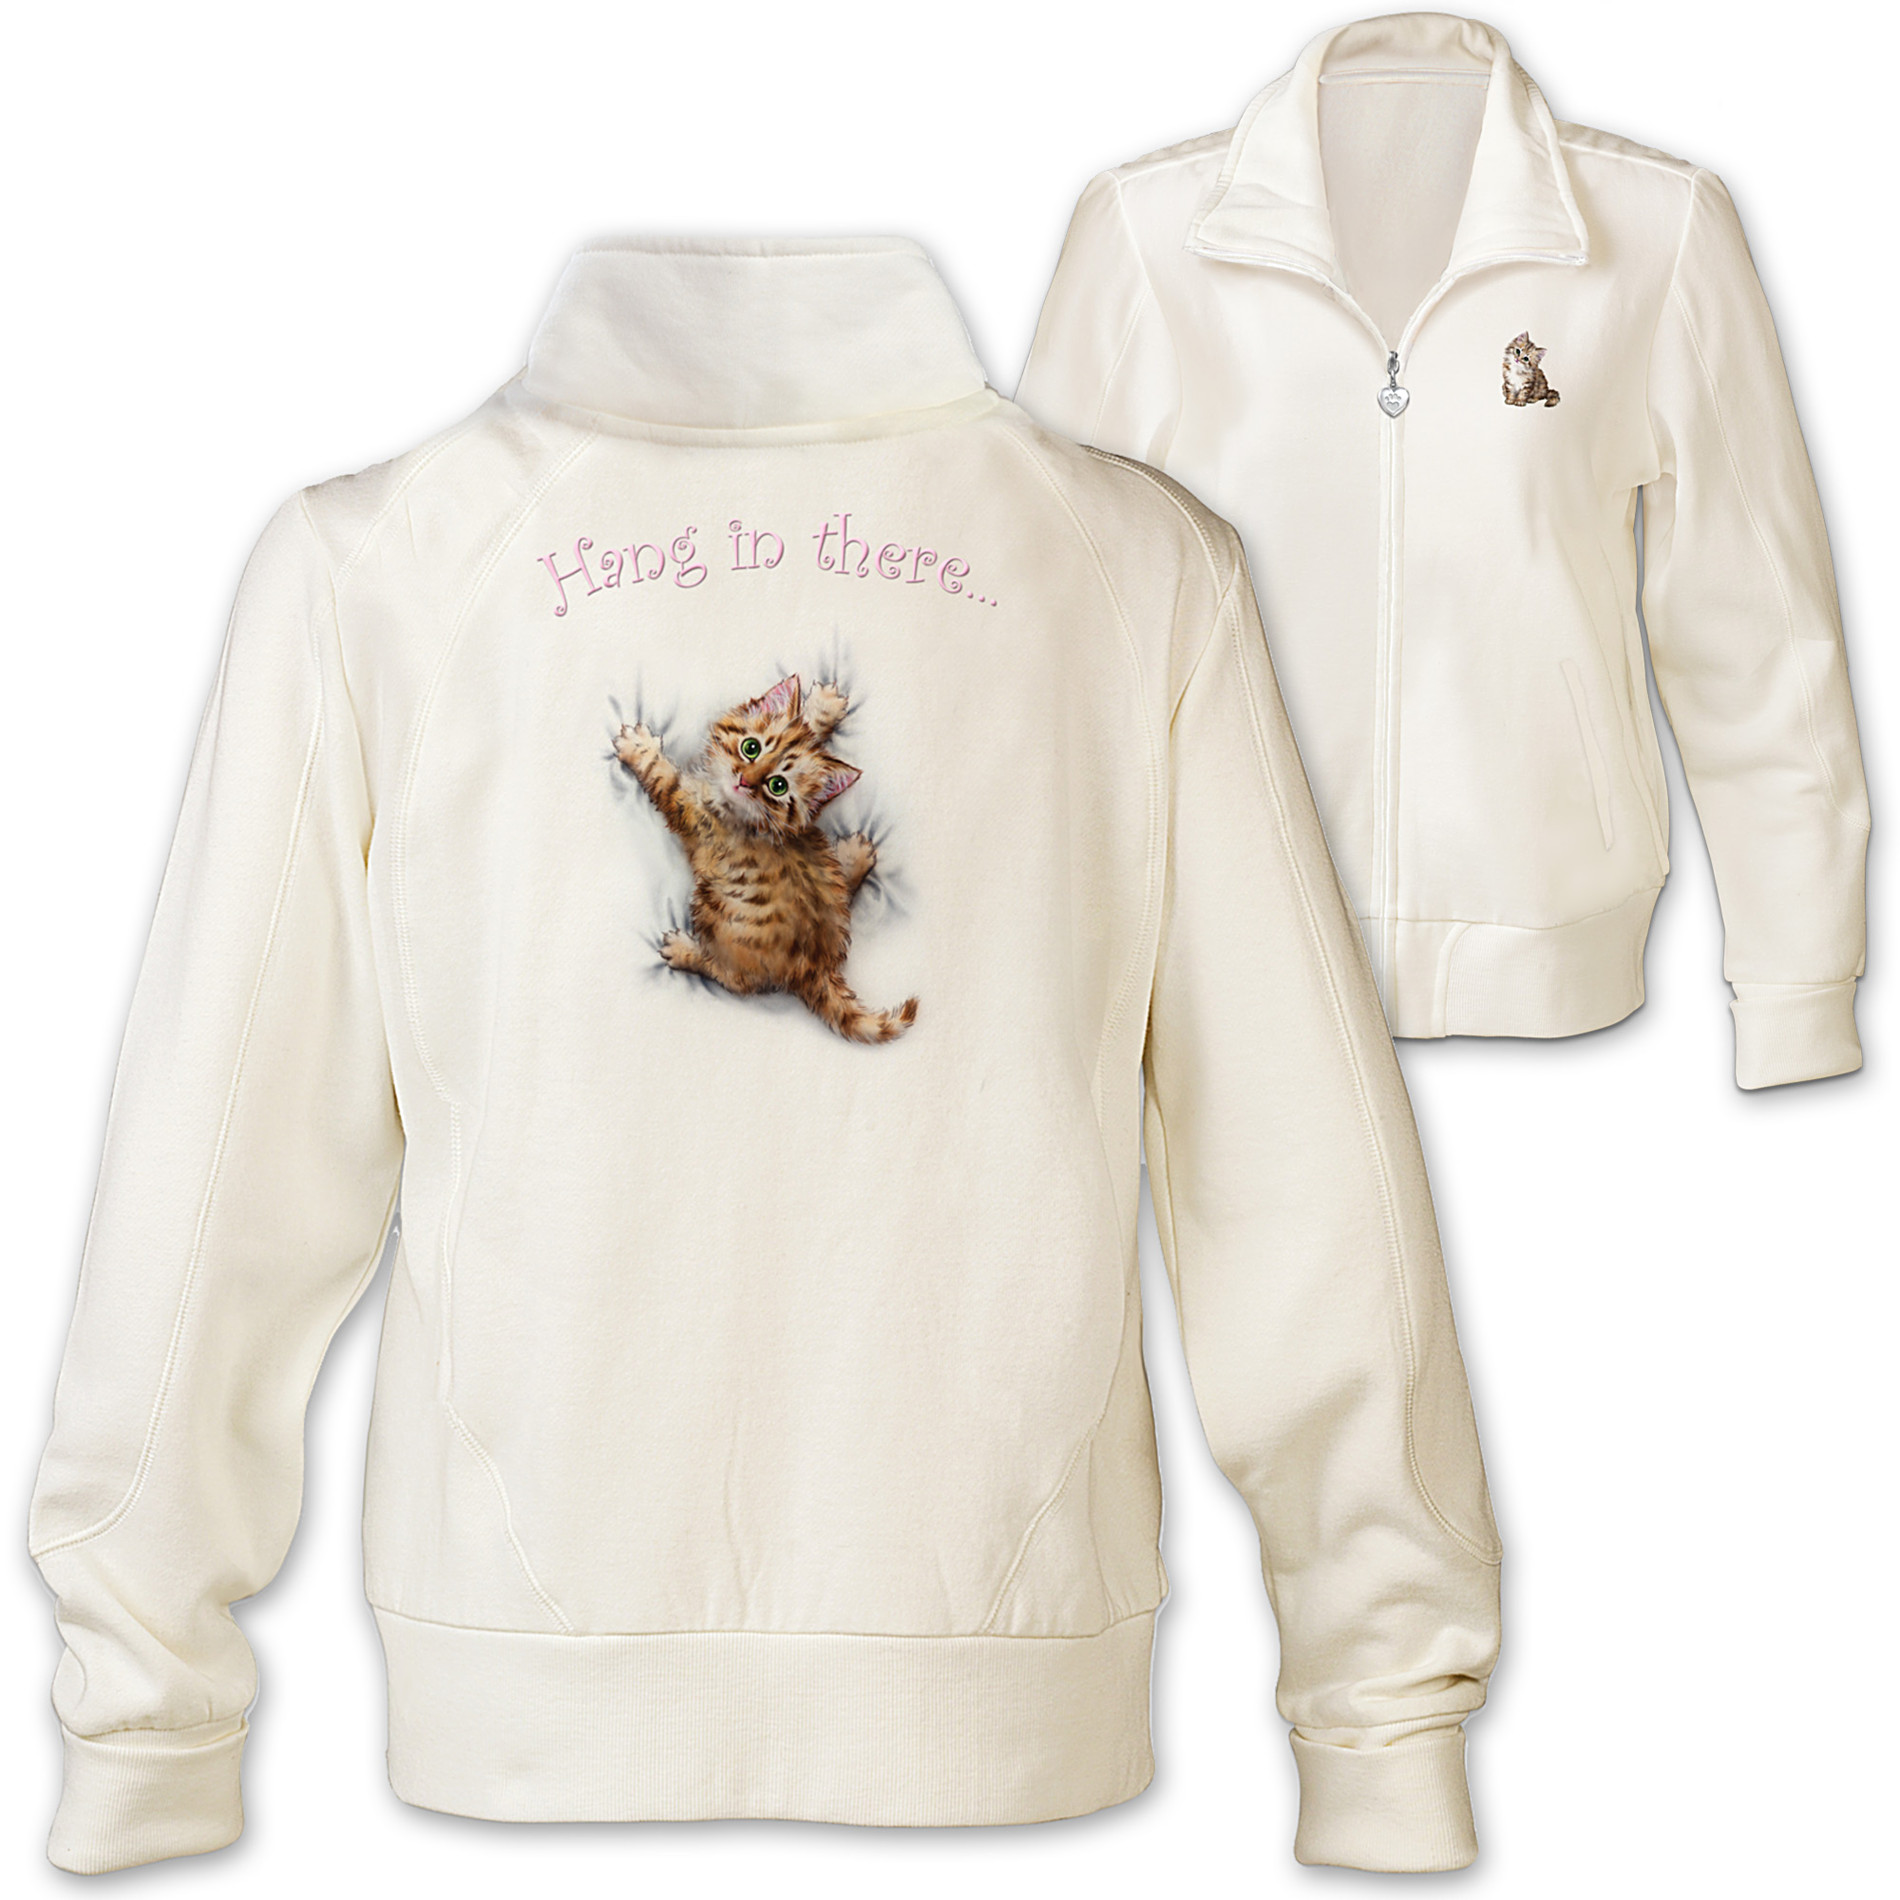 The Bradford Exchange Women's Jacket: Kitten Kutie Women's Jacket at Sears.com